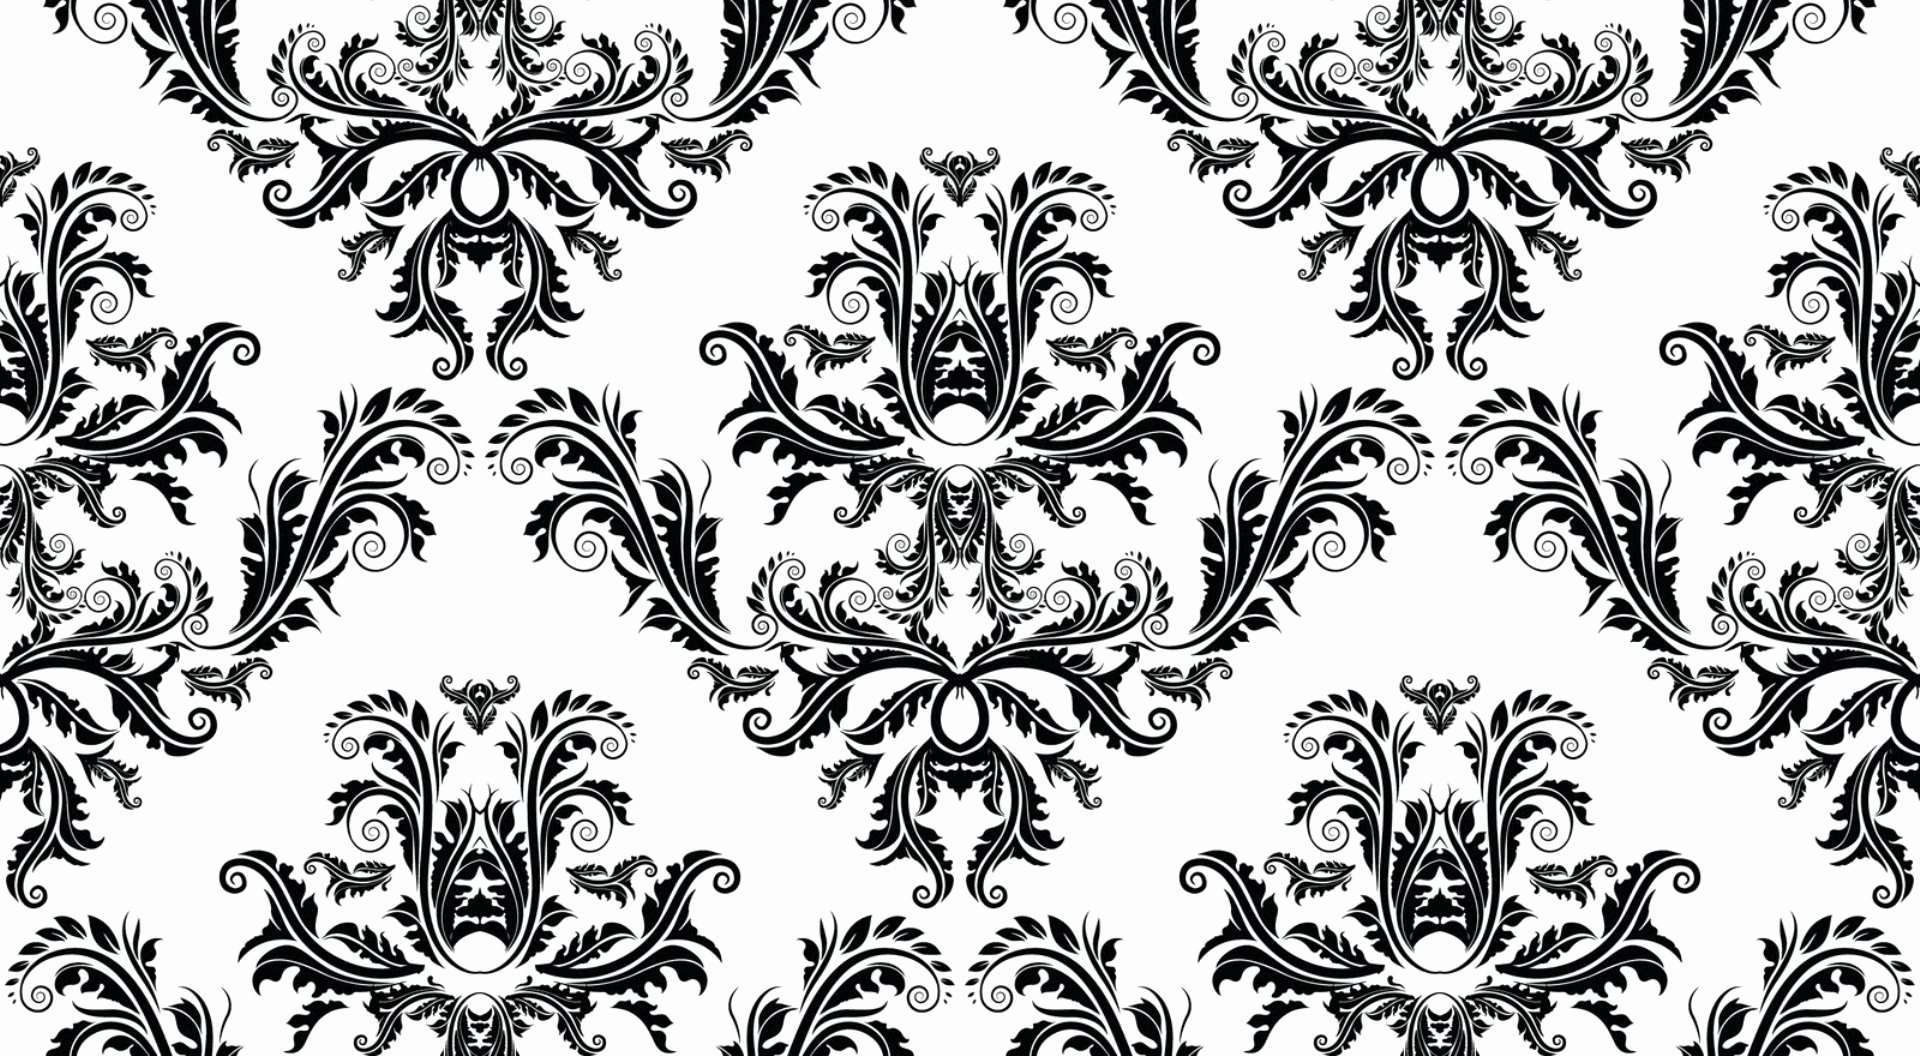 Black and White Pattern New Black and White Pattern Backgrounds